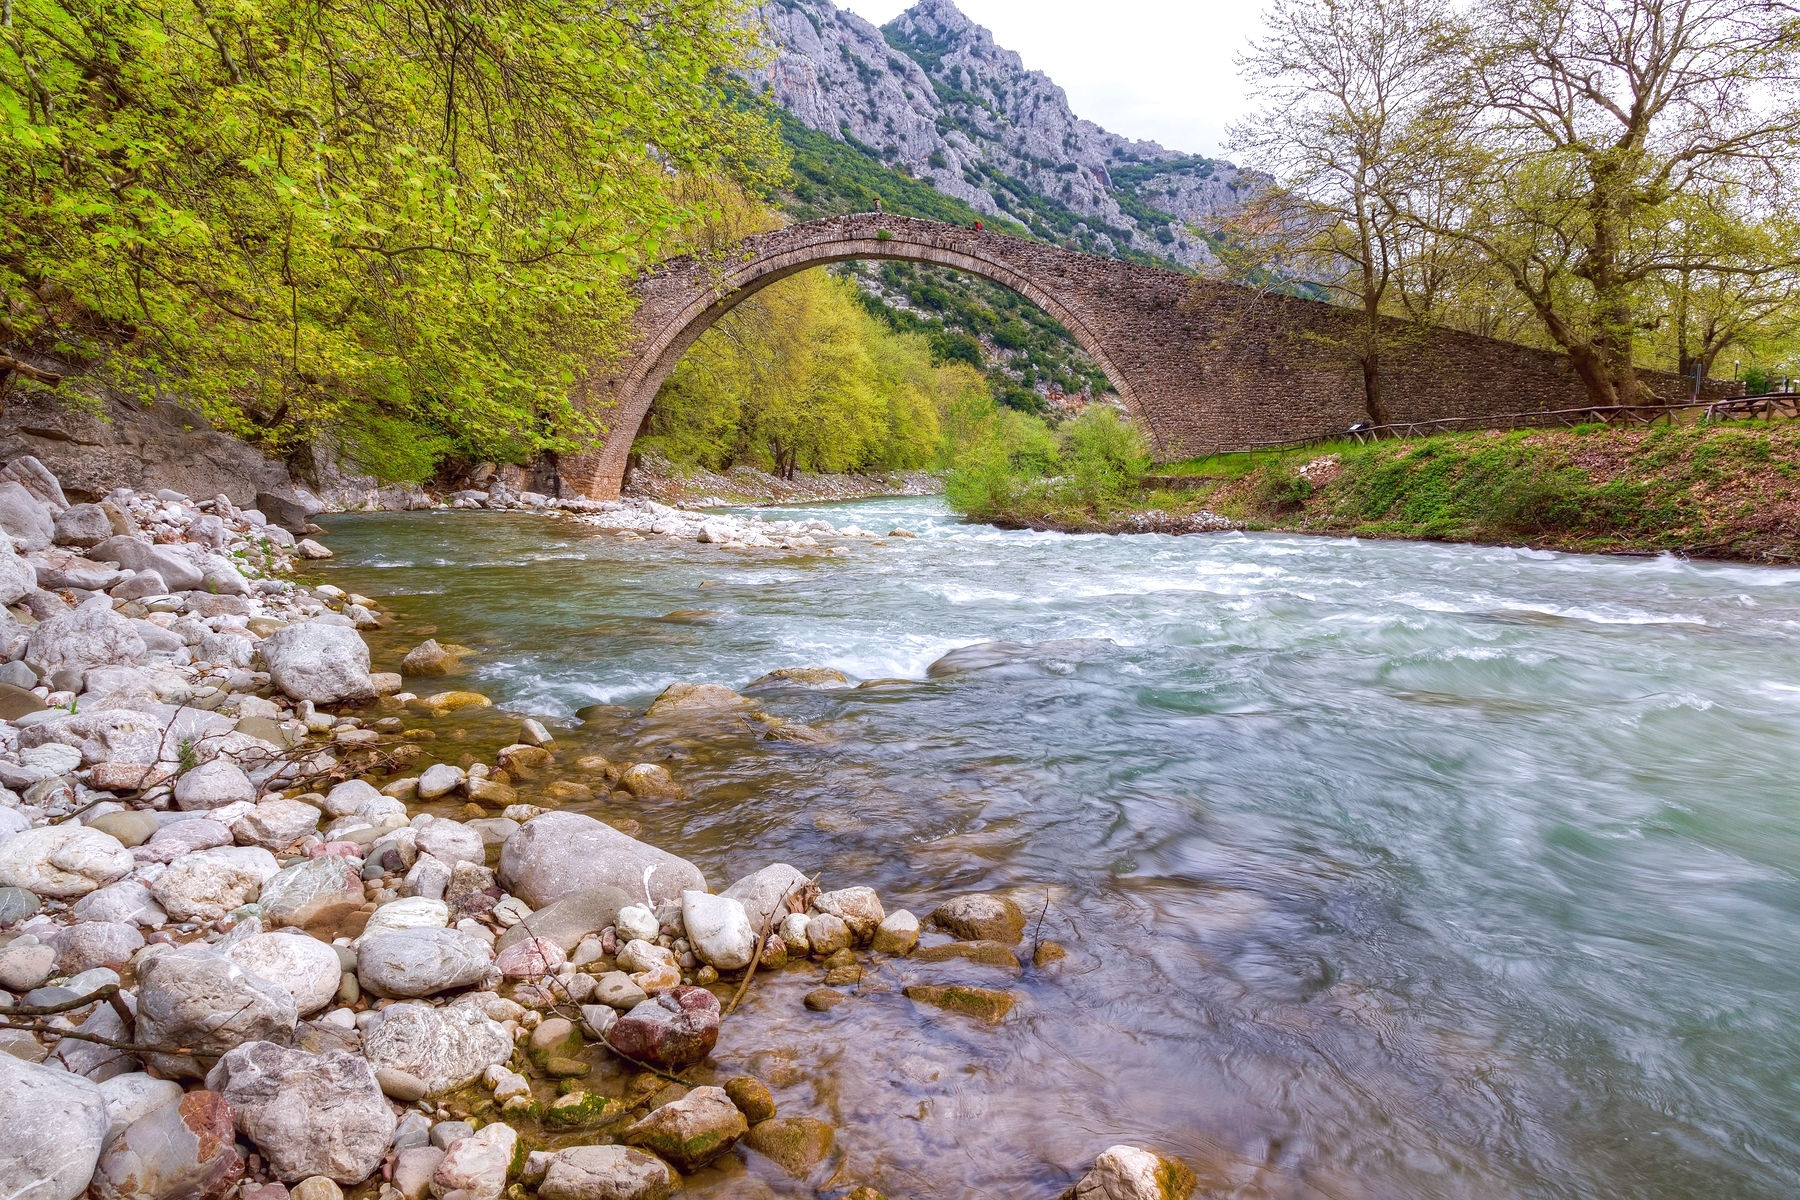 The Arch Stone Bridge And The Portaikos River Of Pertouli (1)